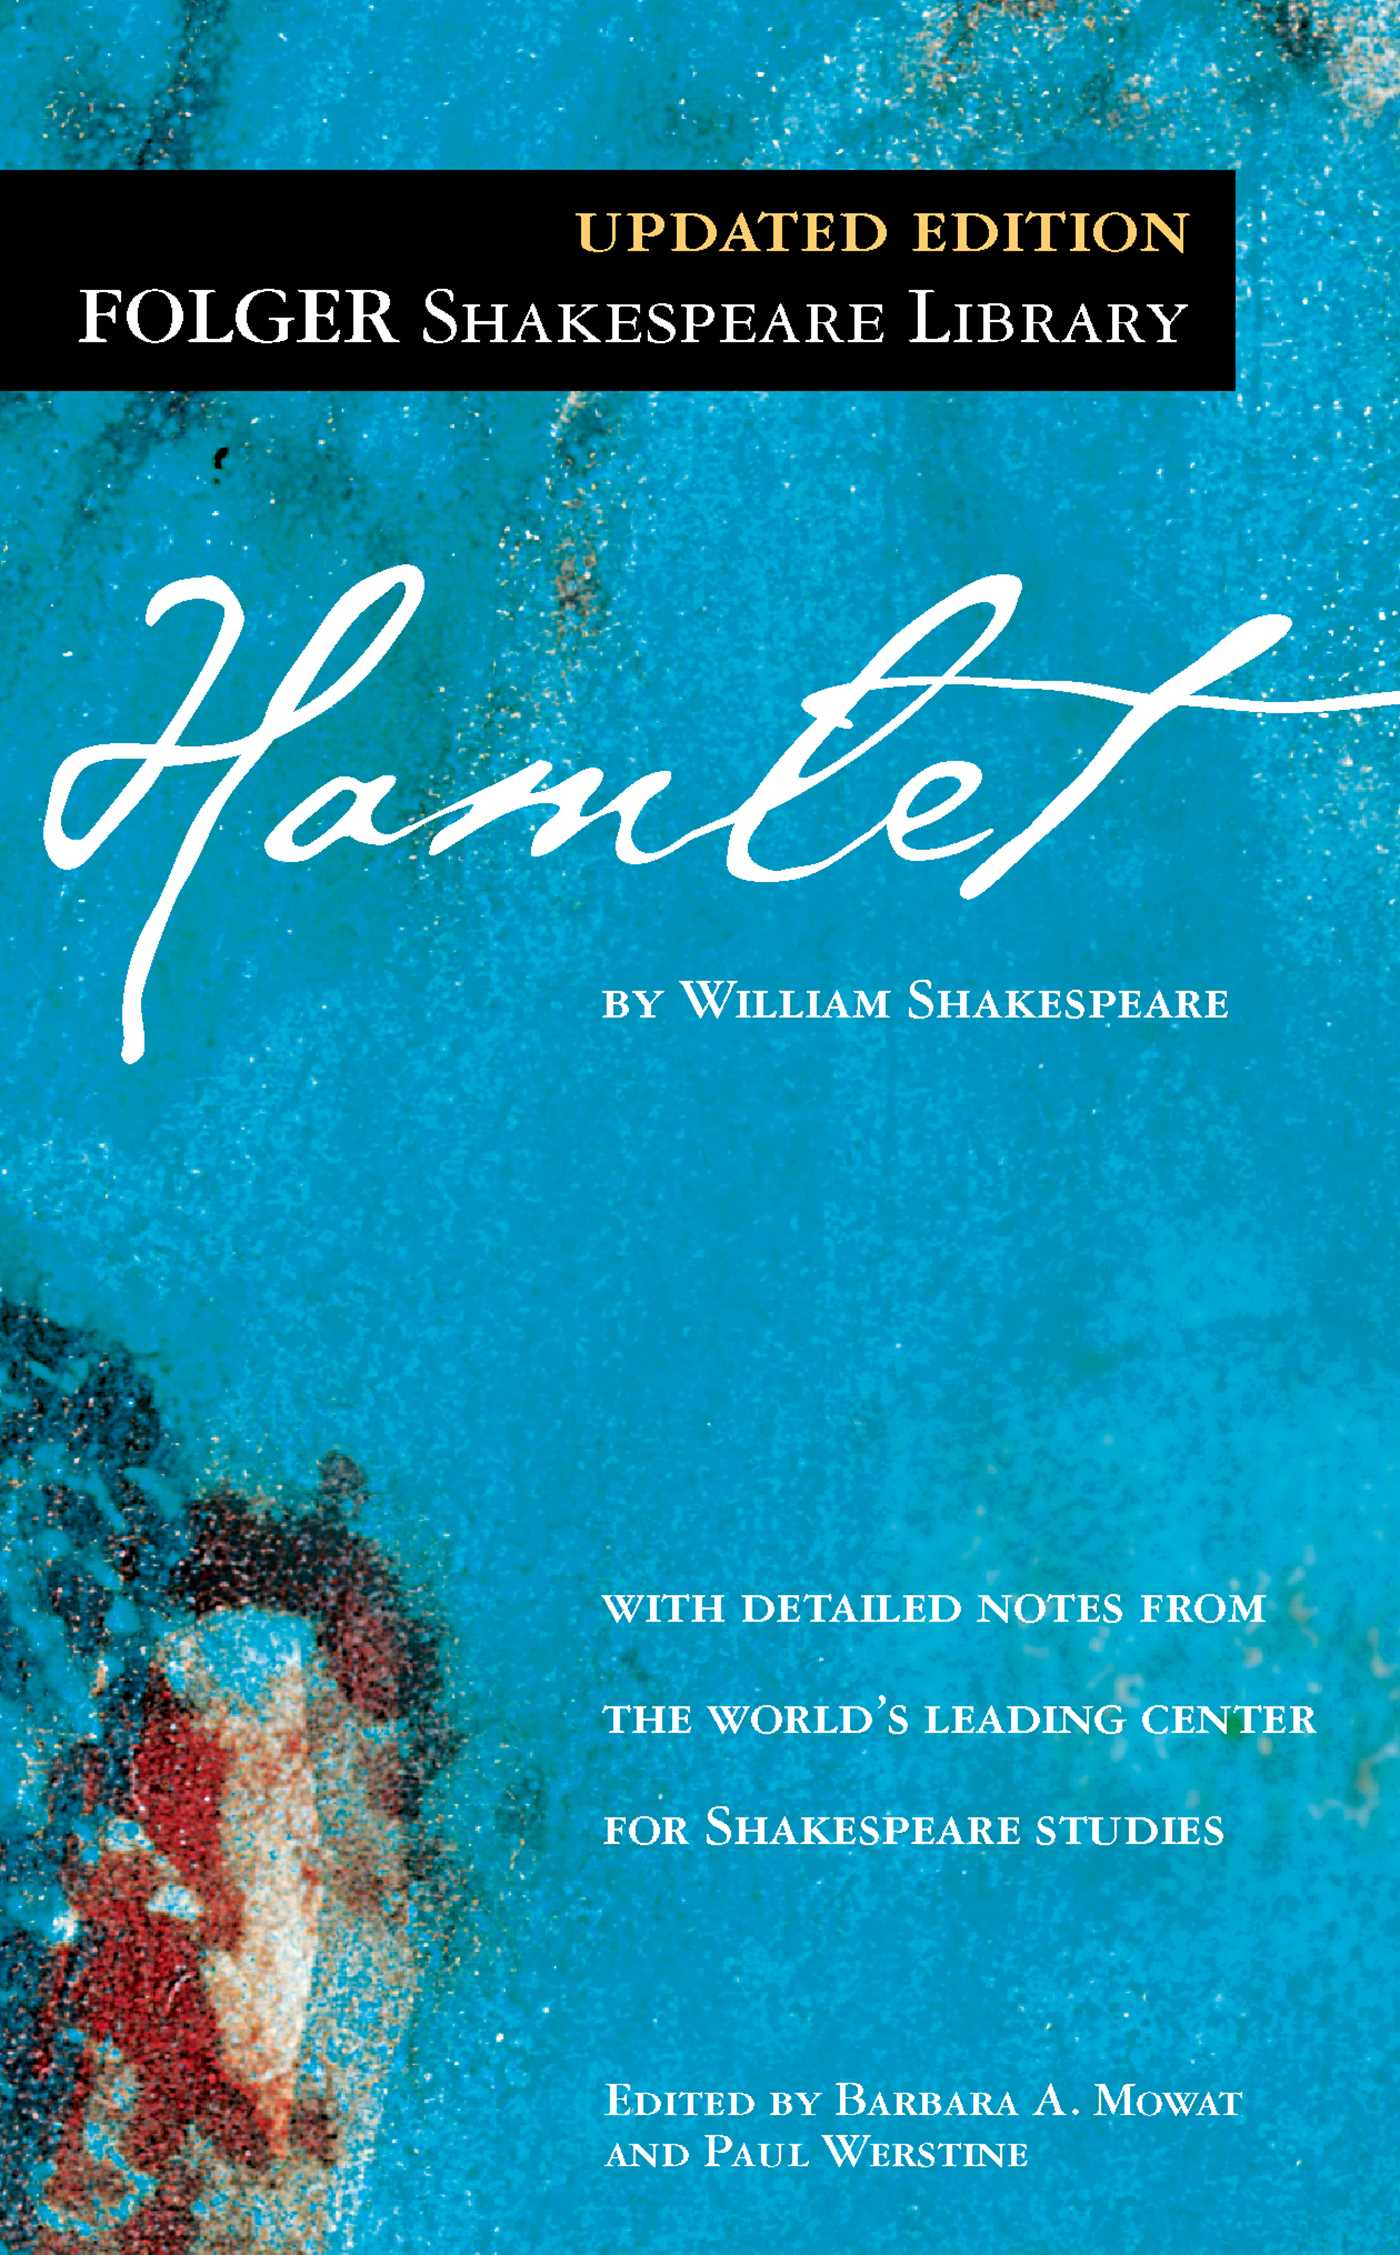 the need for revenge among william shakespeares hamlets characters Shanghai peking opera, among china's most influential art troupes and cultural ambassadors, will bring to life a reimagining of william shakespeare's hamlet.